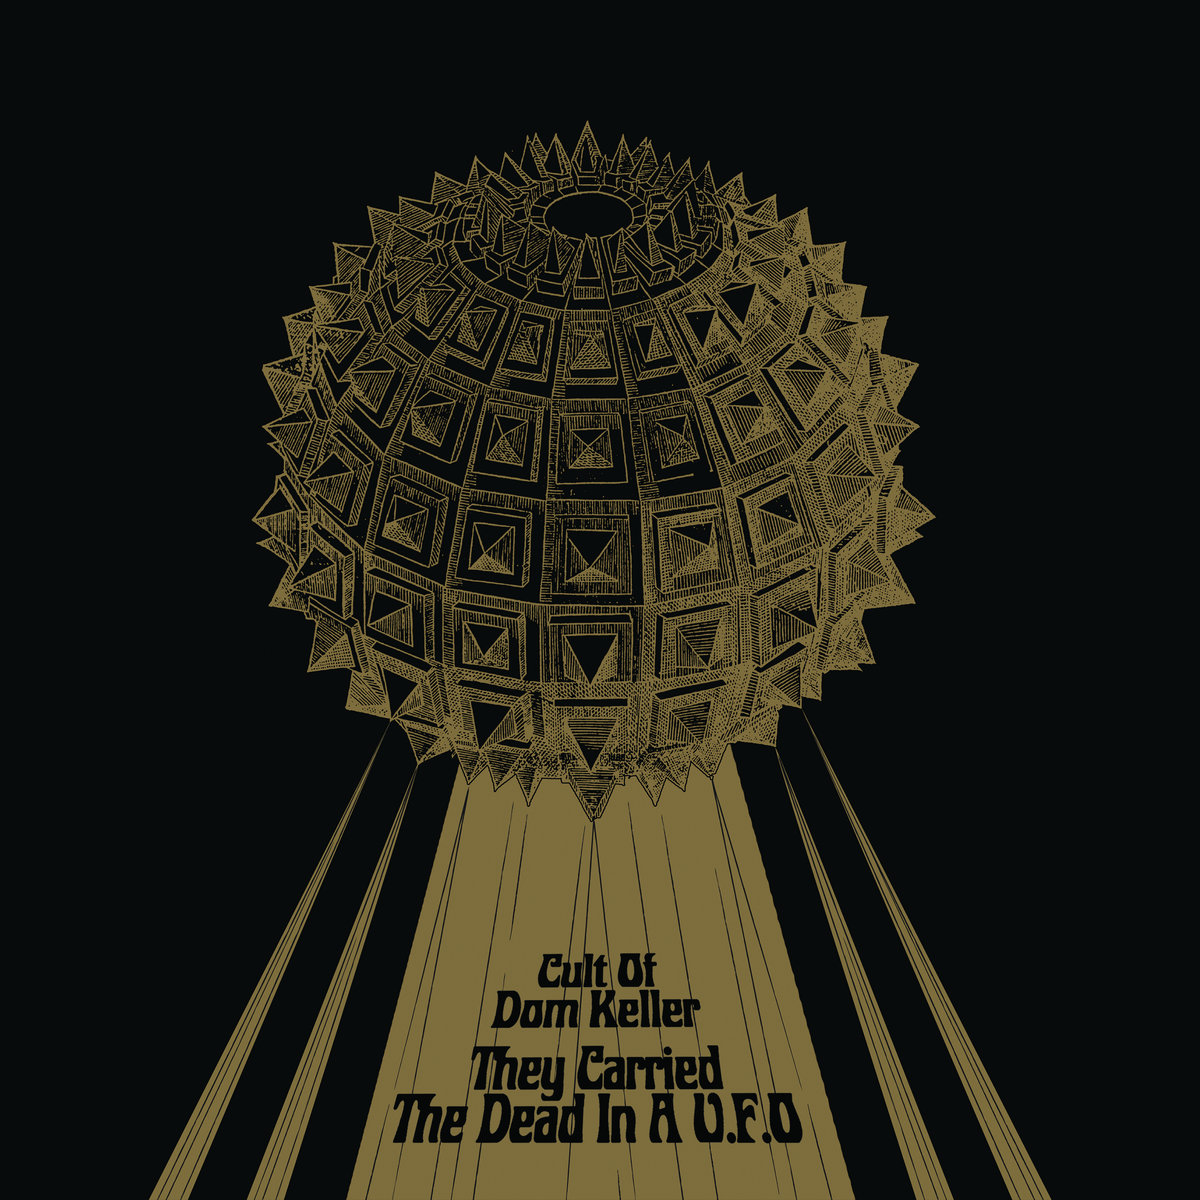 The Cult Of Dom Keller - They Carried The Dead In A U.F.O